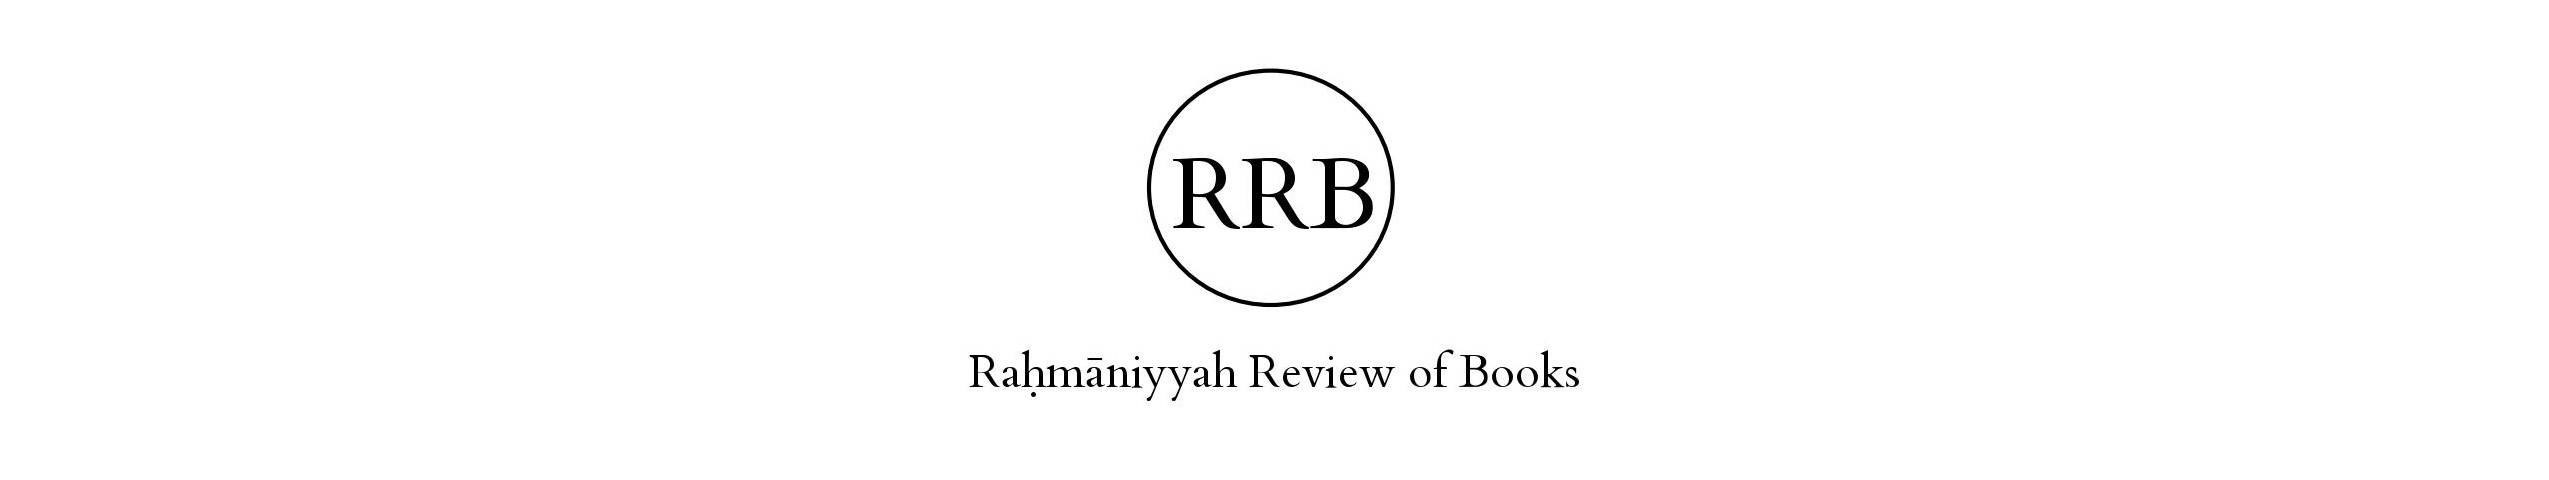 Rahmaniyyah Review of Books